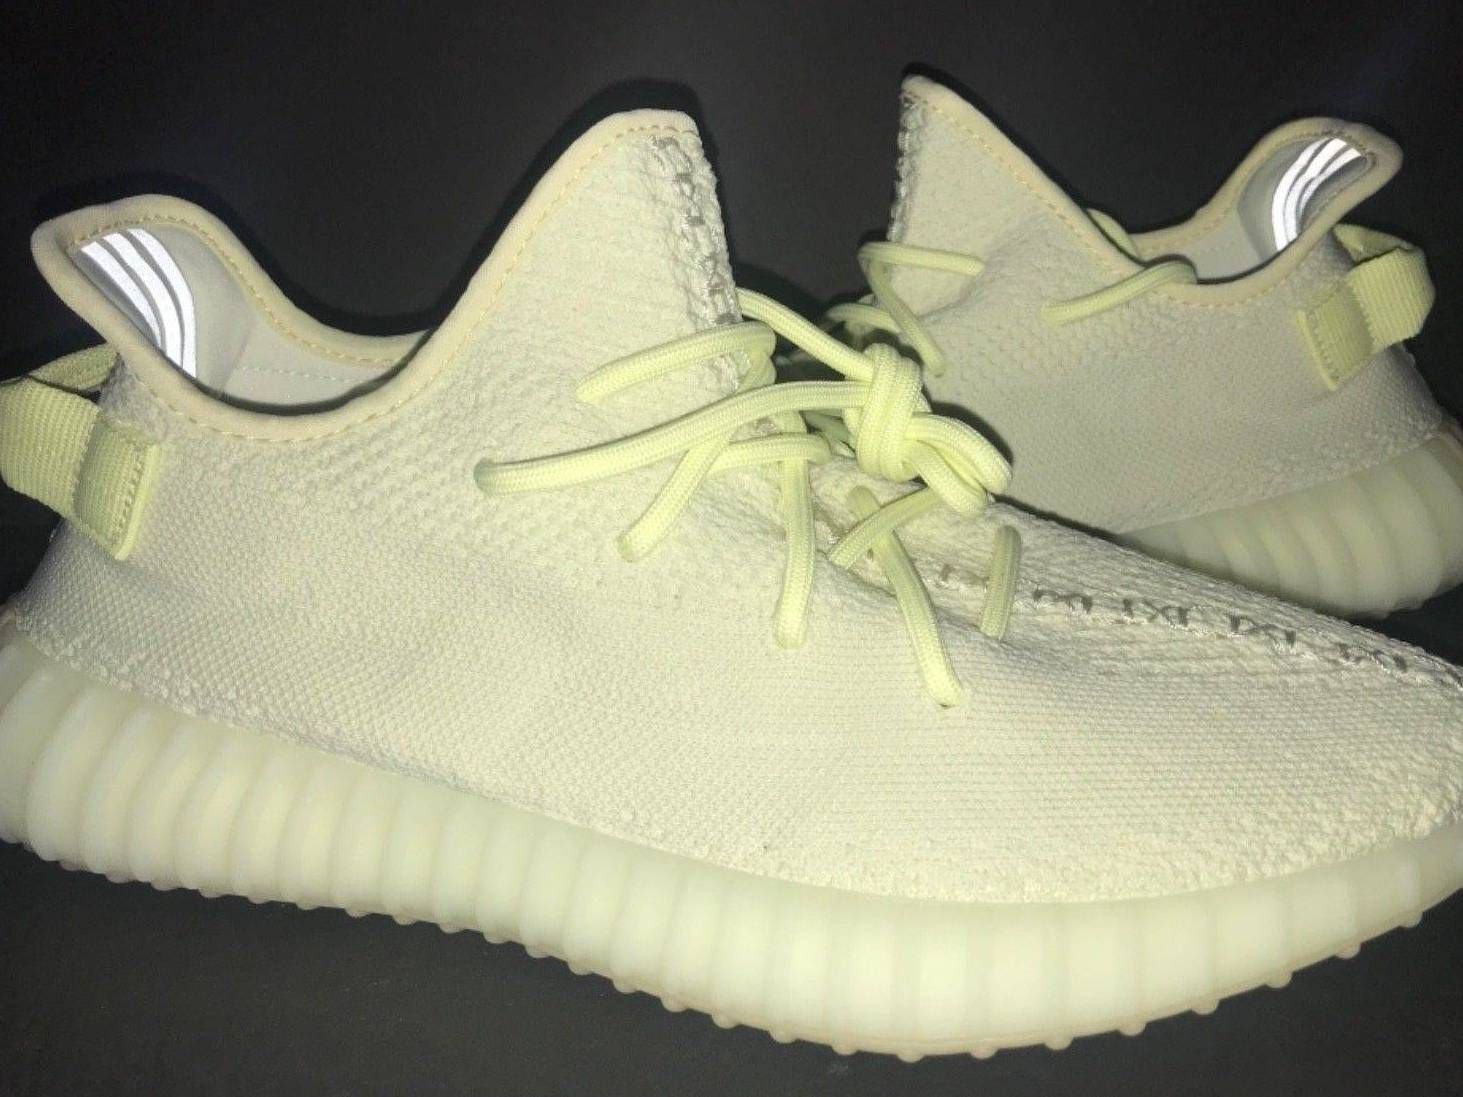 premium selection e06dc aab2d NEW DS Adidas Yeezy Boost 350 V2 Butter F36980 Kanye